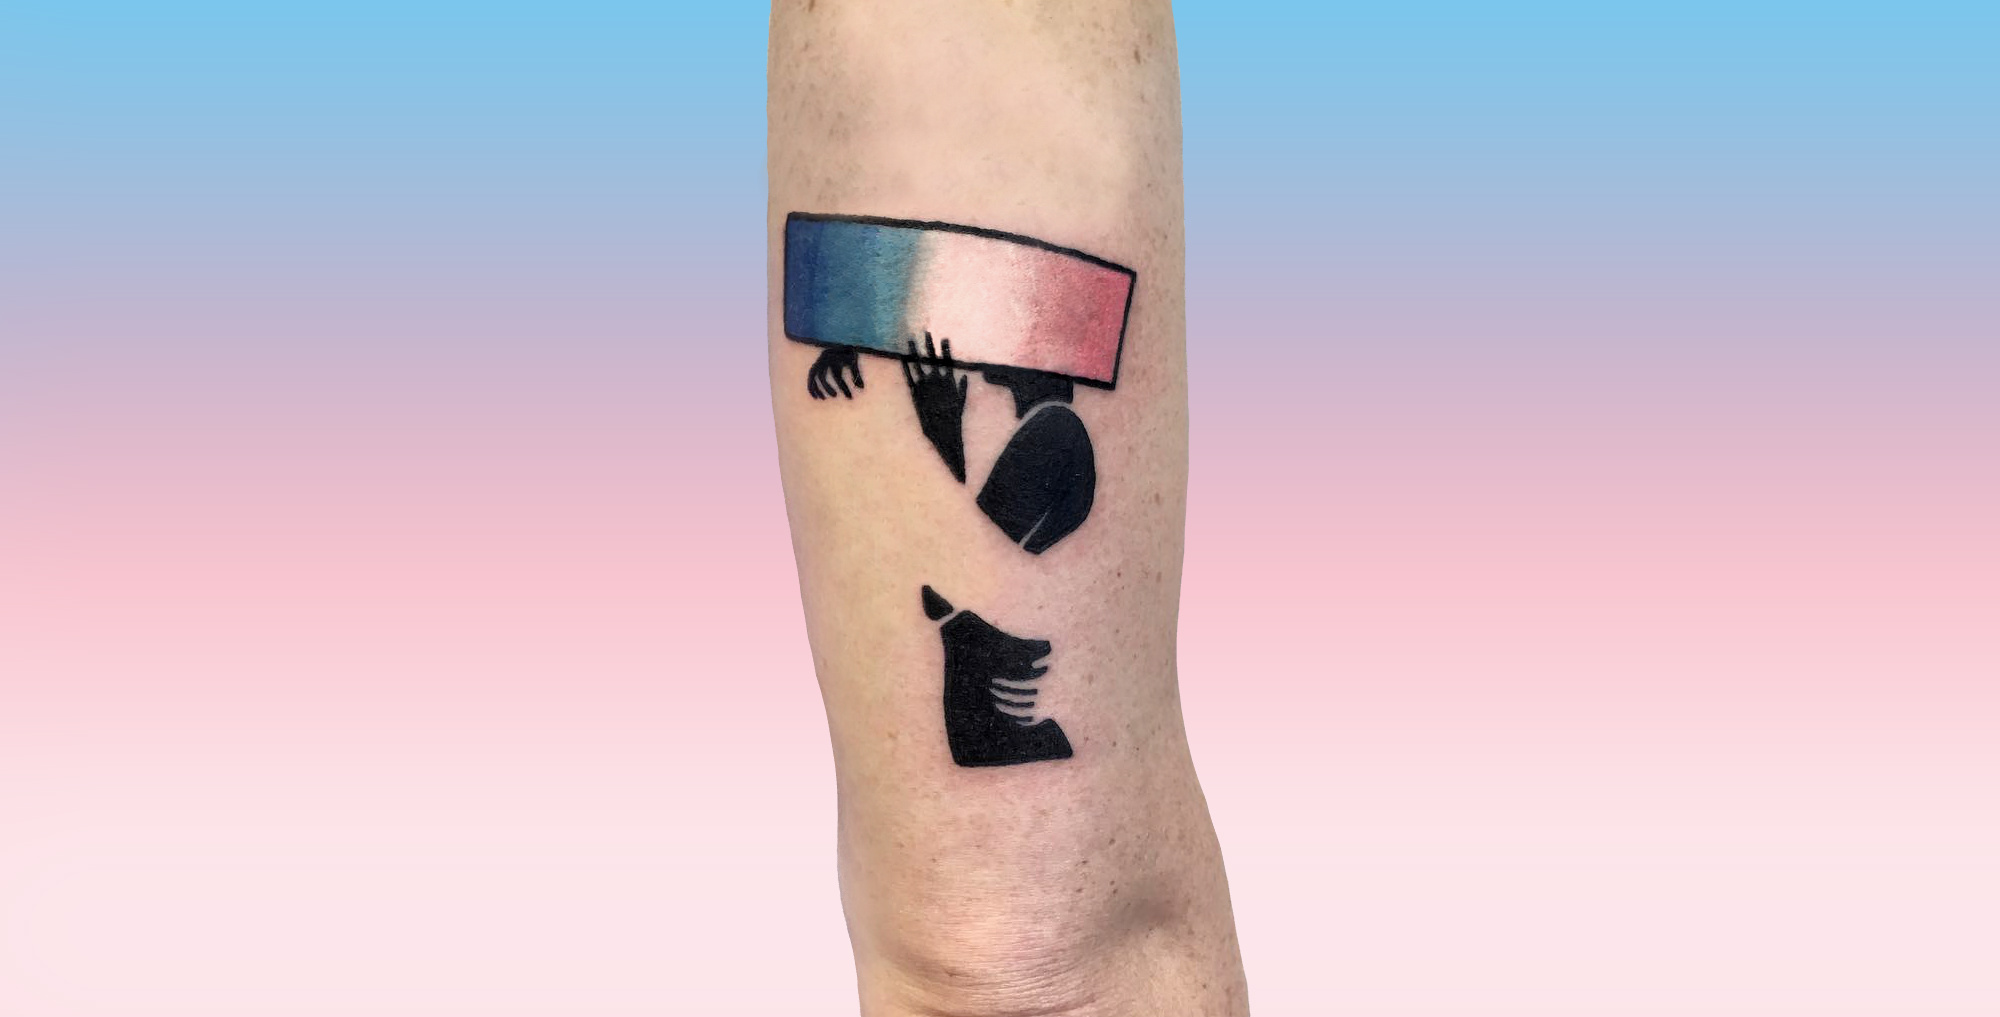 Transgender love tattoo by Blaabad